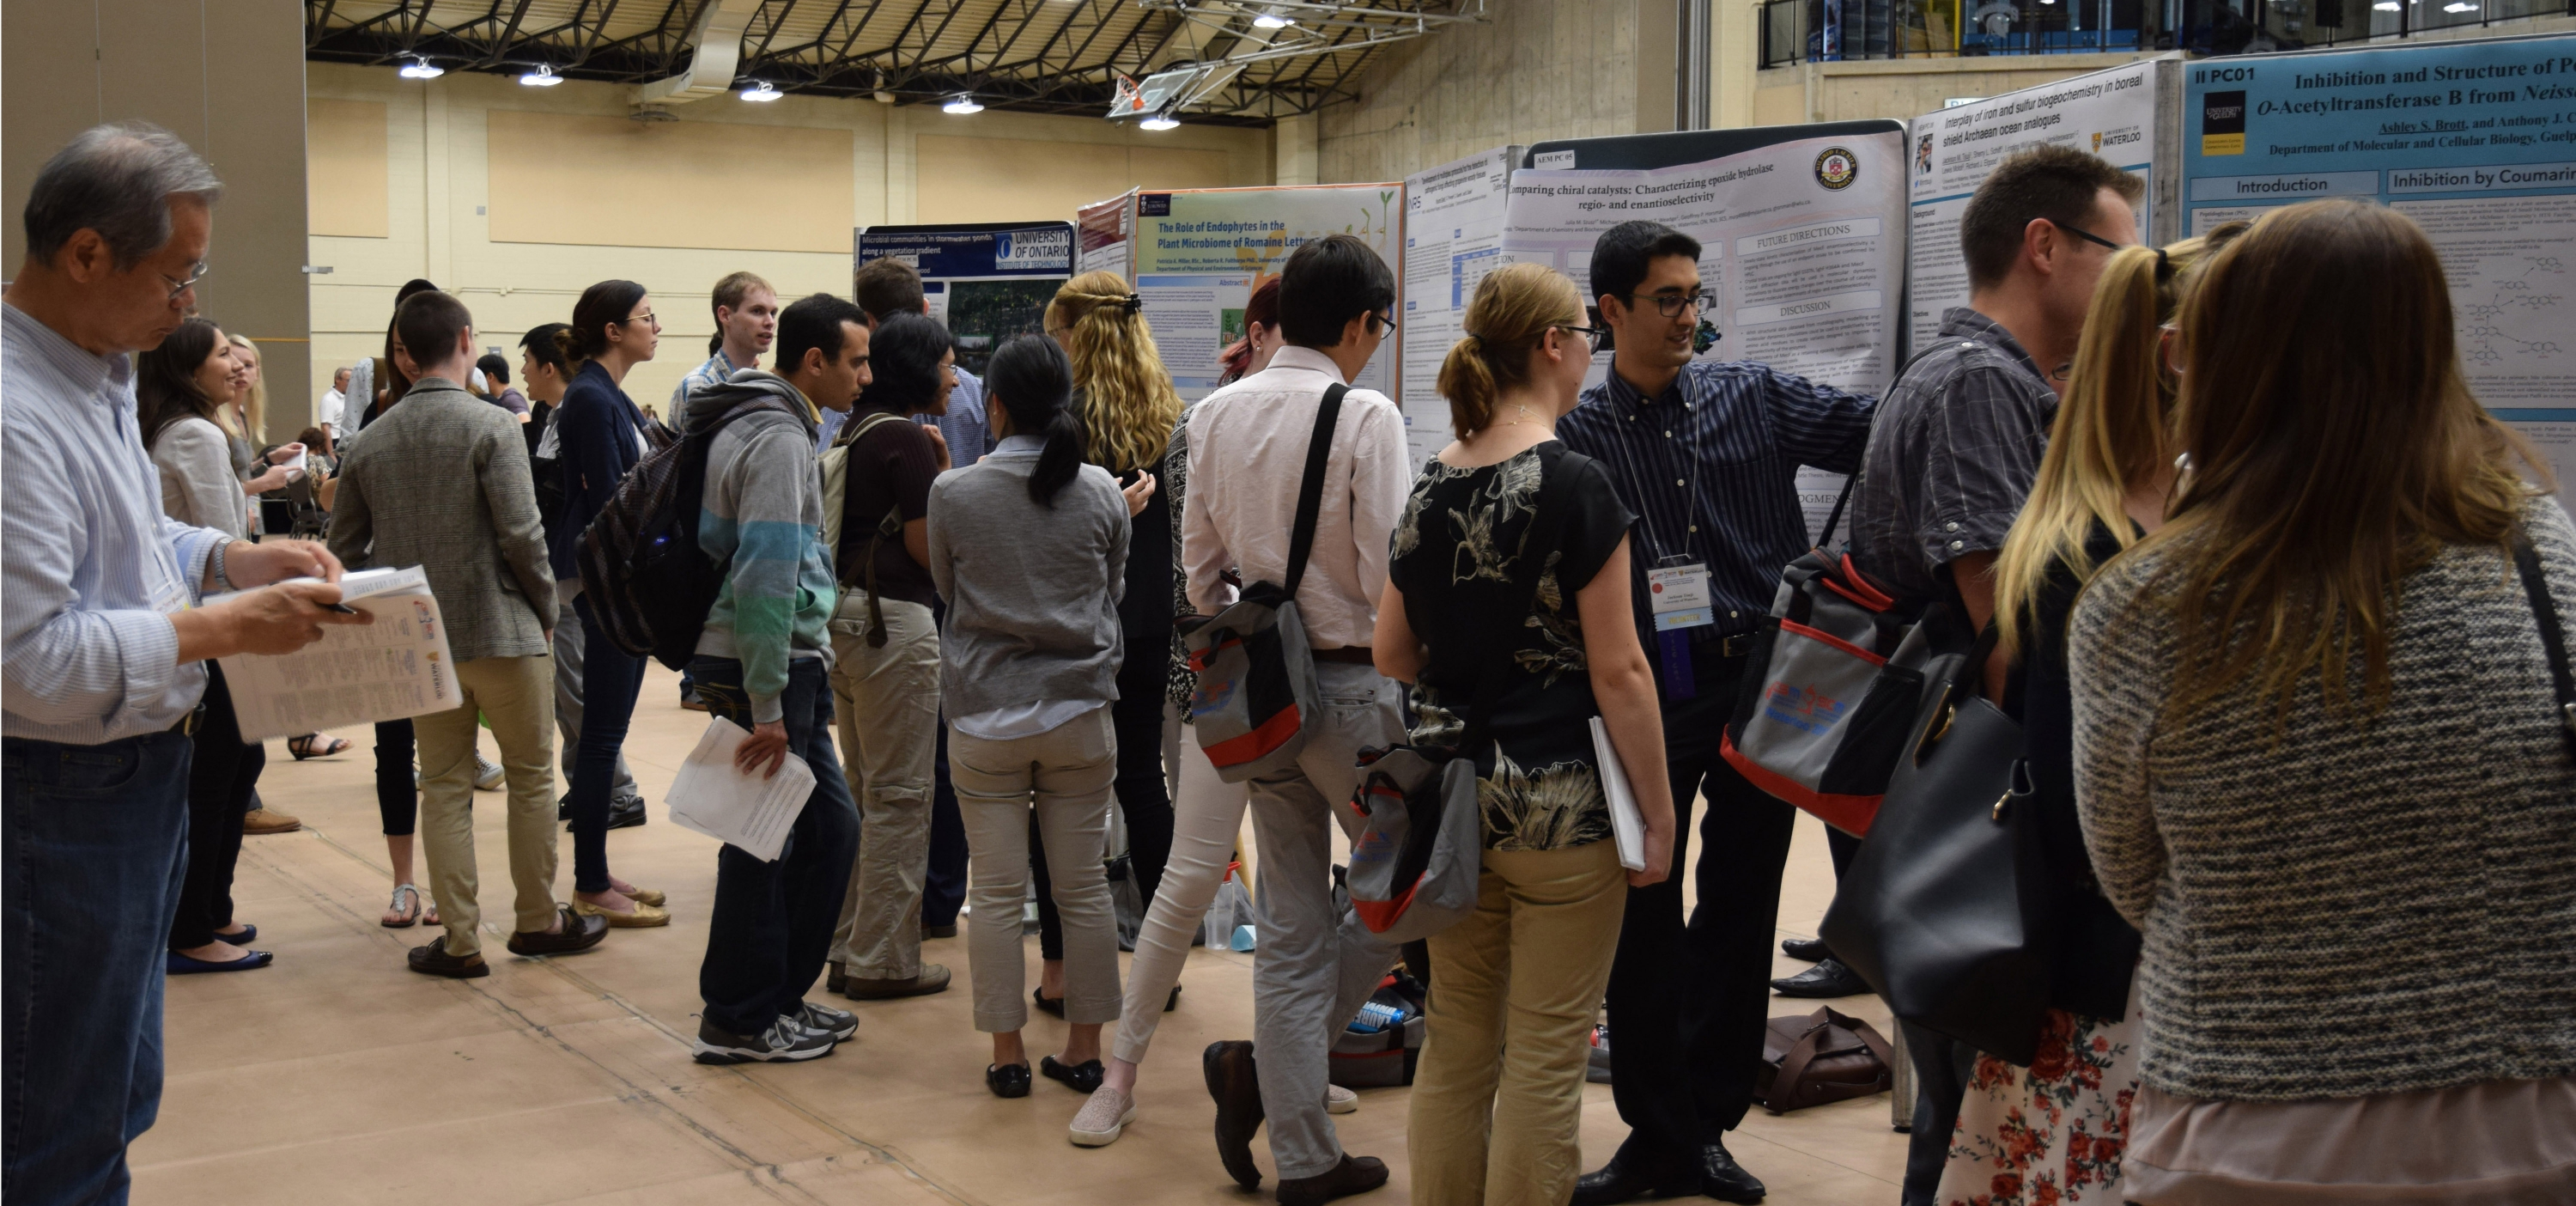 The poster session at the 2017 Canadian Society of Microbiologists conference.